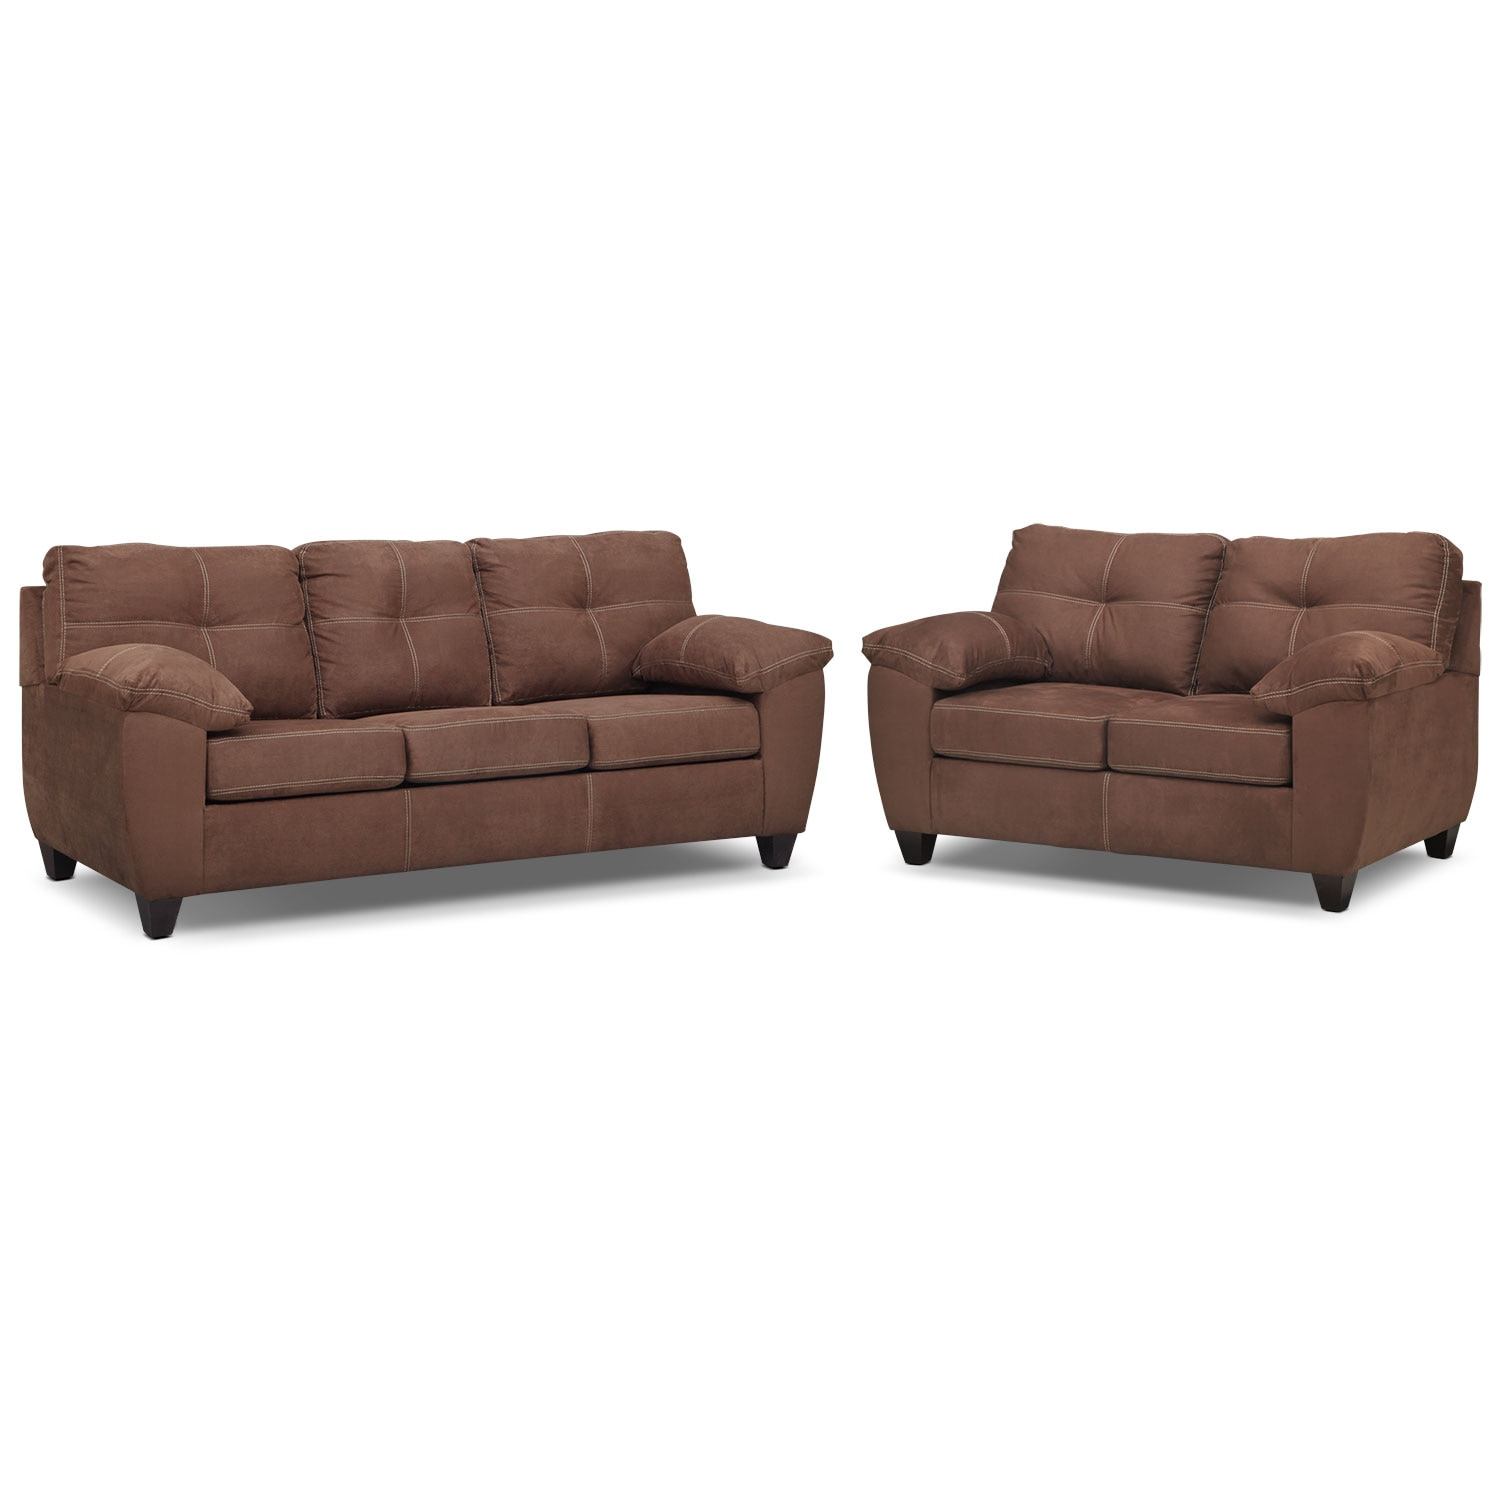 Rialto Sofa and Loveseat Set - Coffee